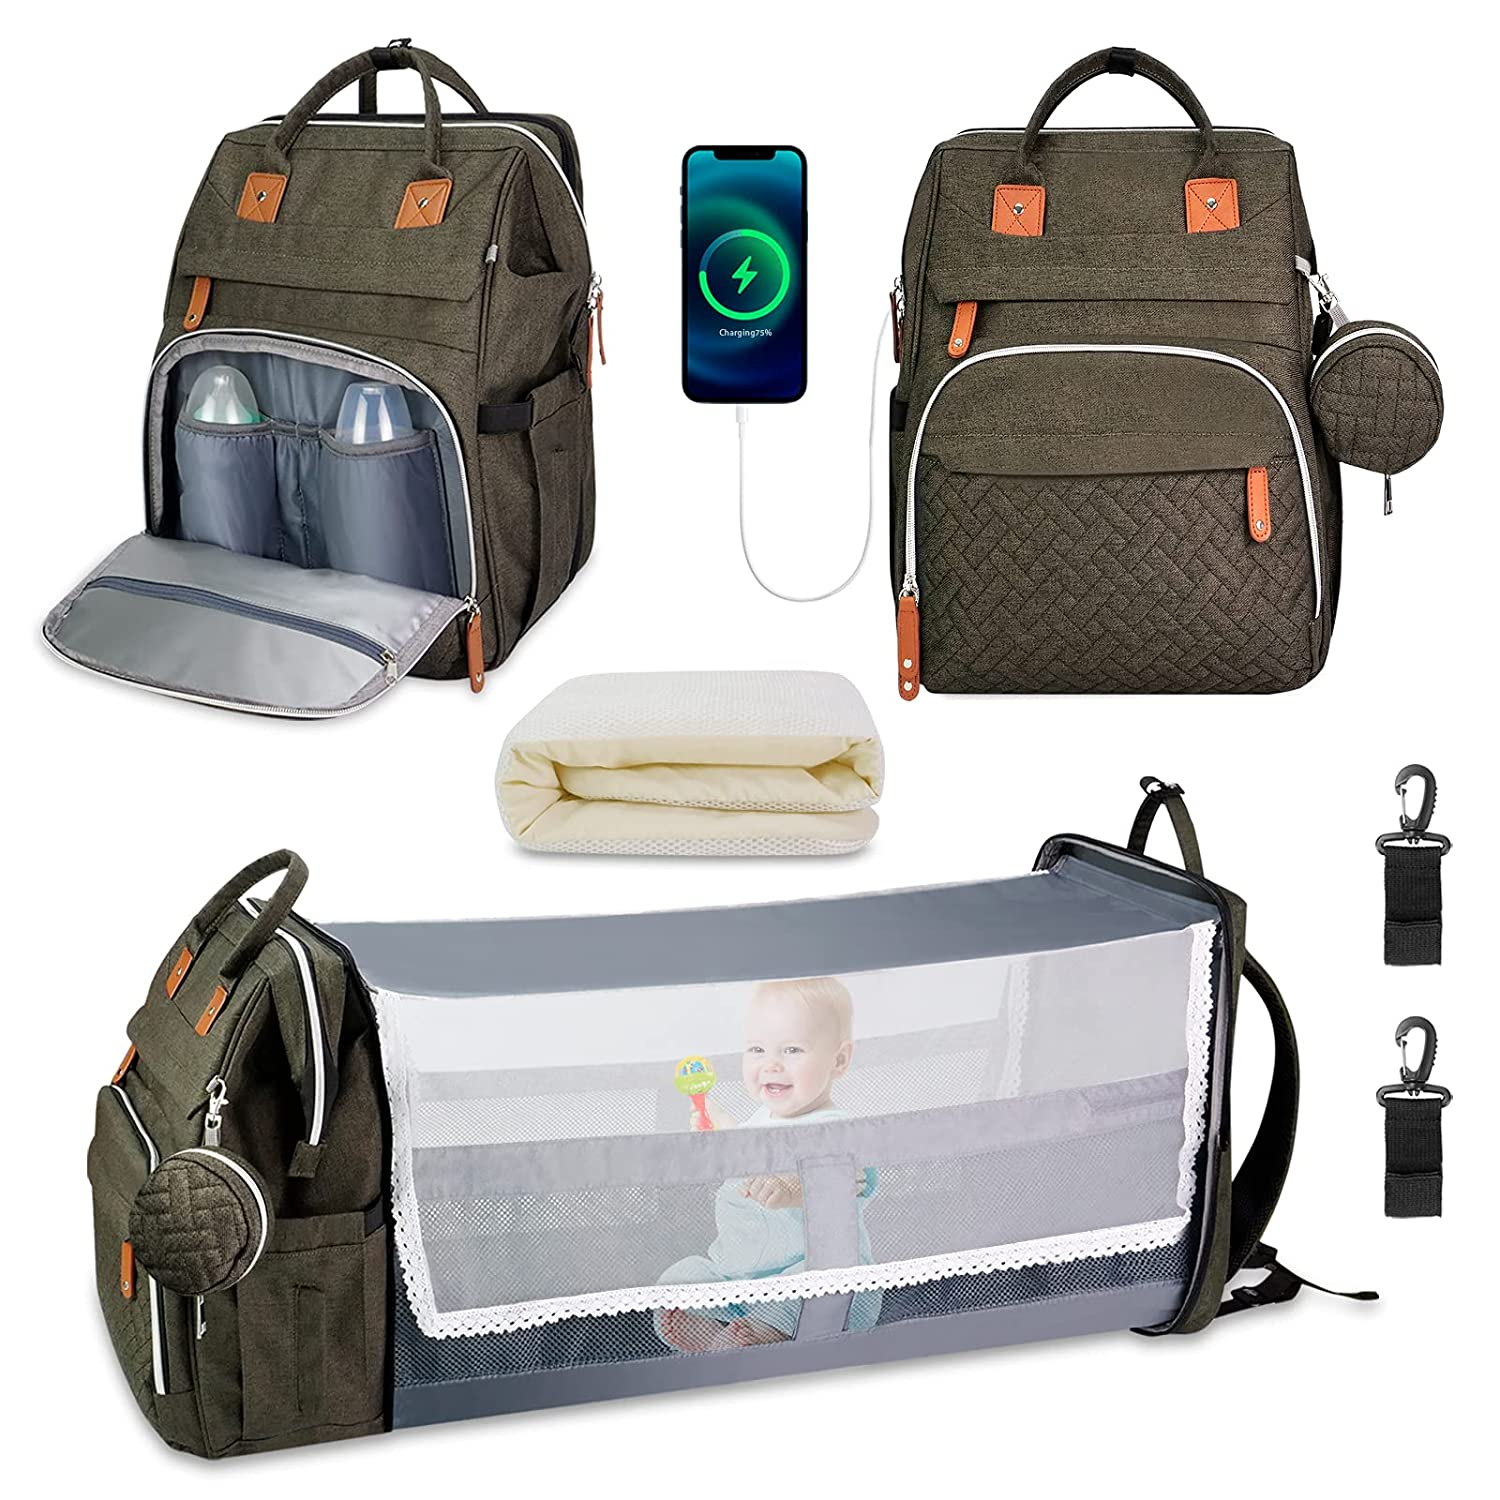 Liaojiong Diaper Bag with Changing Station, Baby Bag for Boys Girls, Portable Foldable Backpack Diaper Bags Travel Bag, Large Capacity, Waterproof Bag with Bassinet Bed, Pacifier Case, Shade Cloth